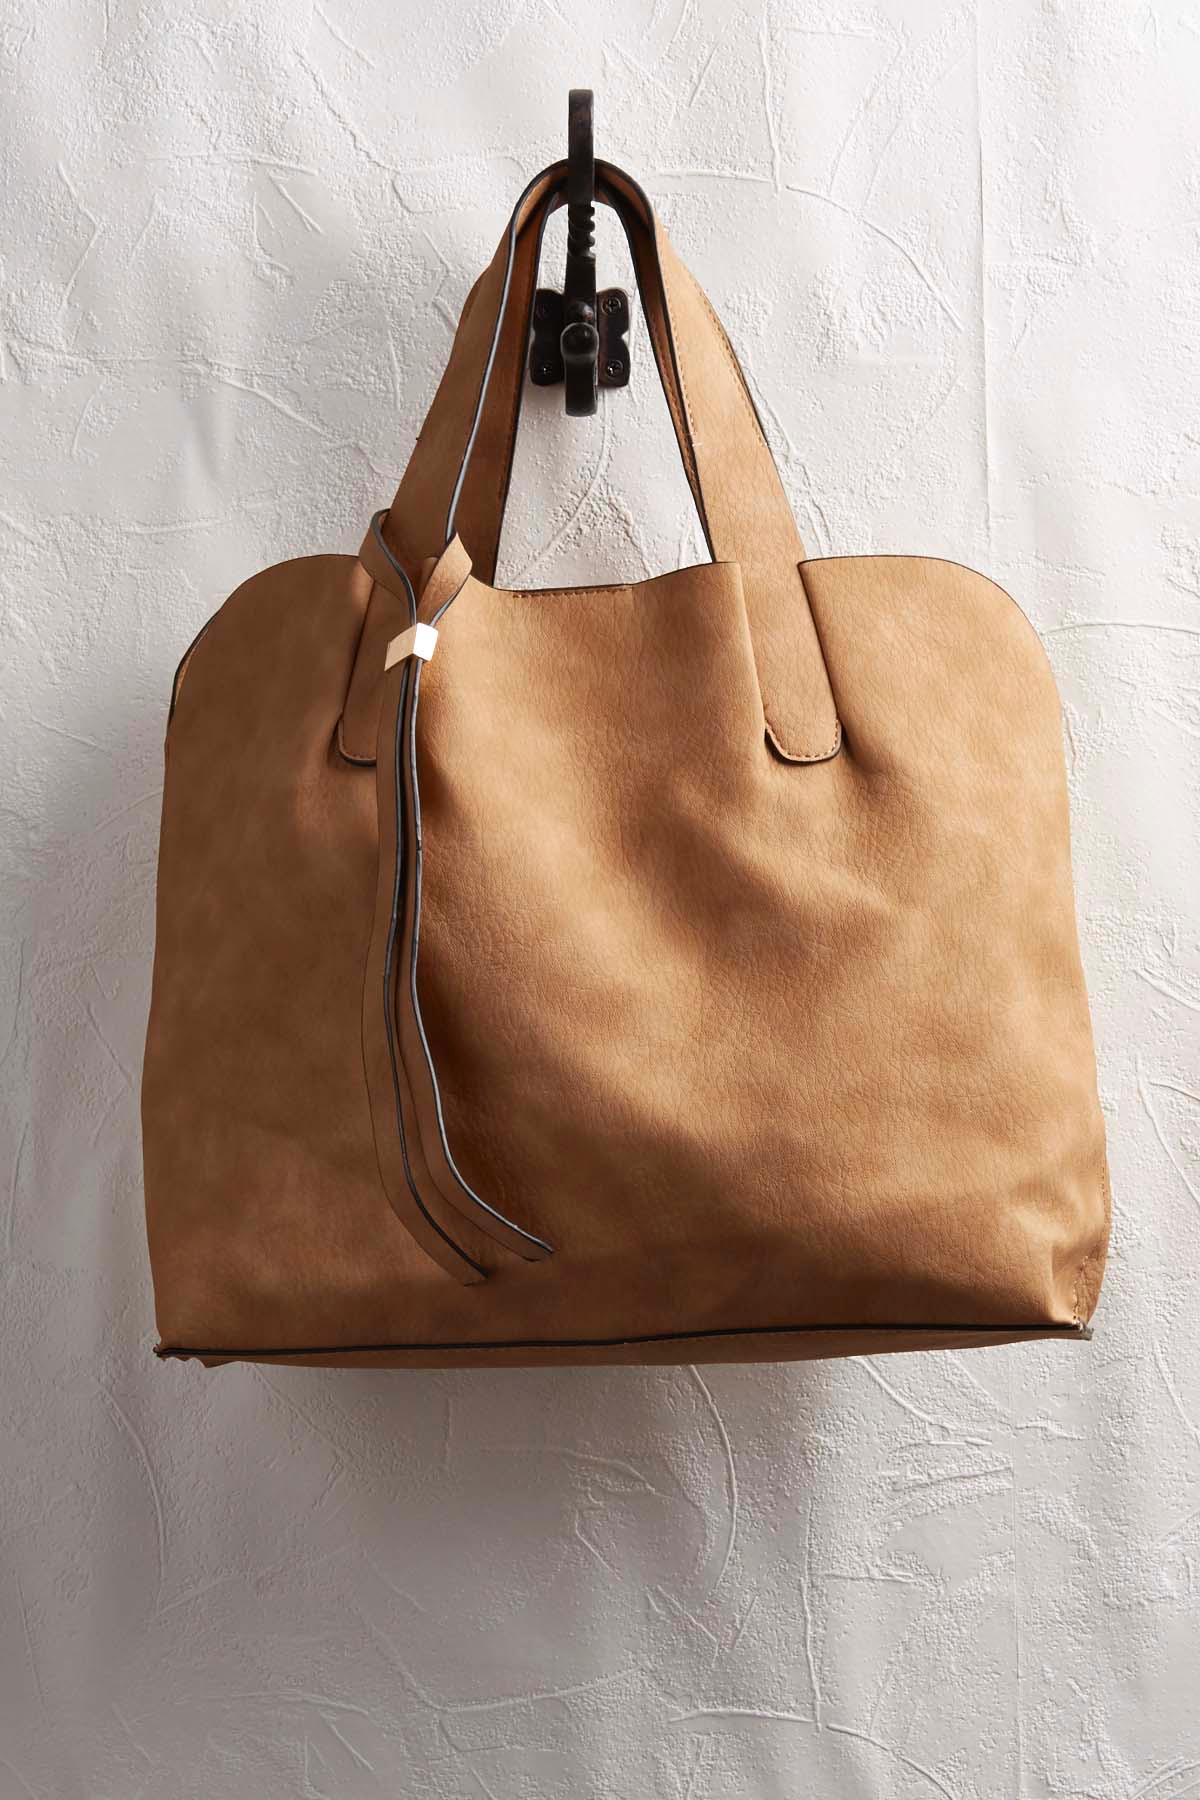 Burnished Bag In Bag Set